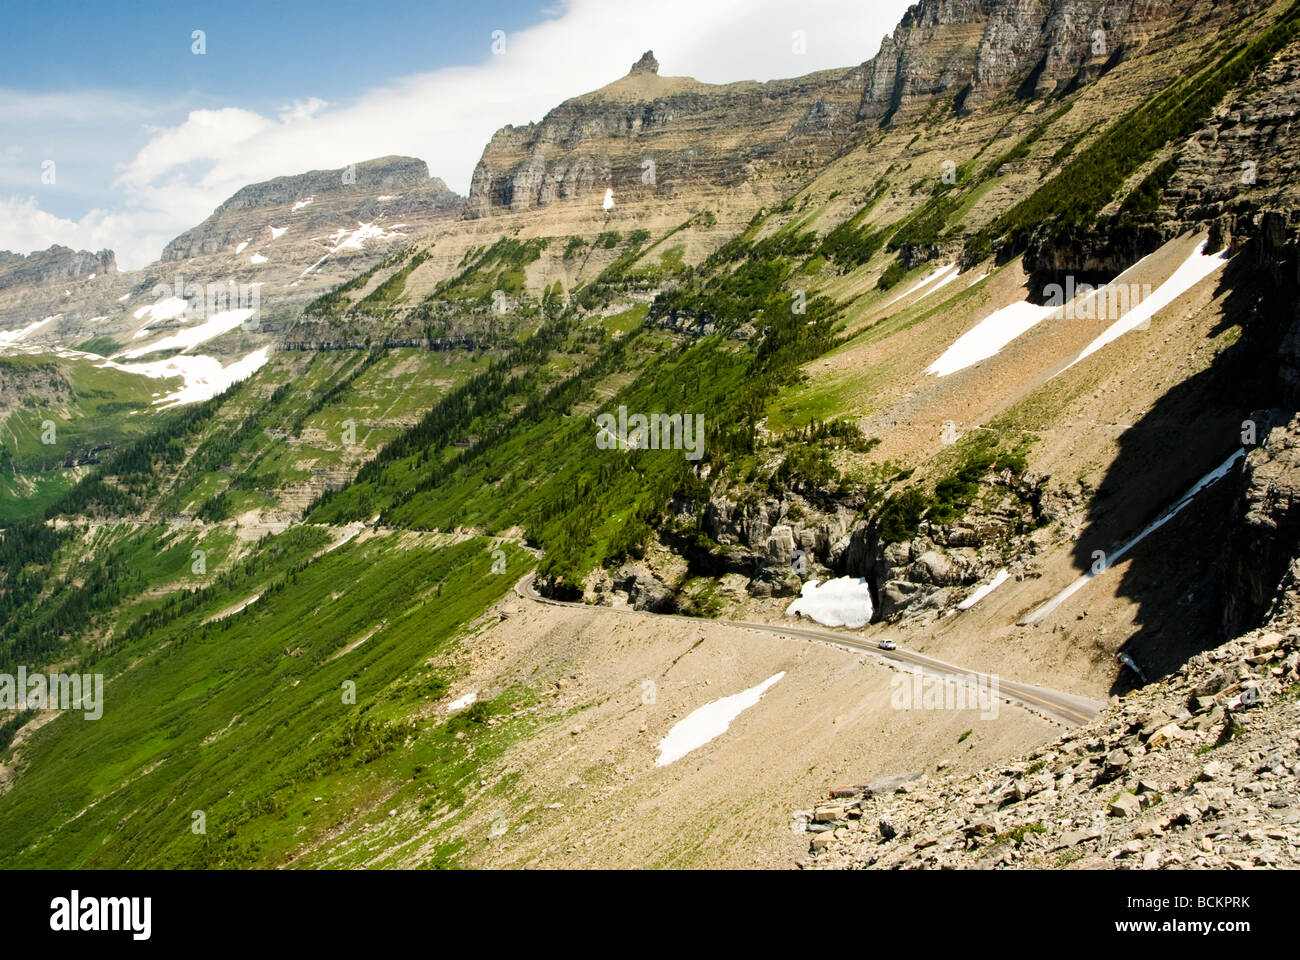 View Of The Garden Wall And Going To The Sun Road From The Highline Stock Photo 25021239 Alamy